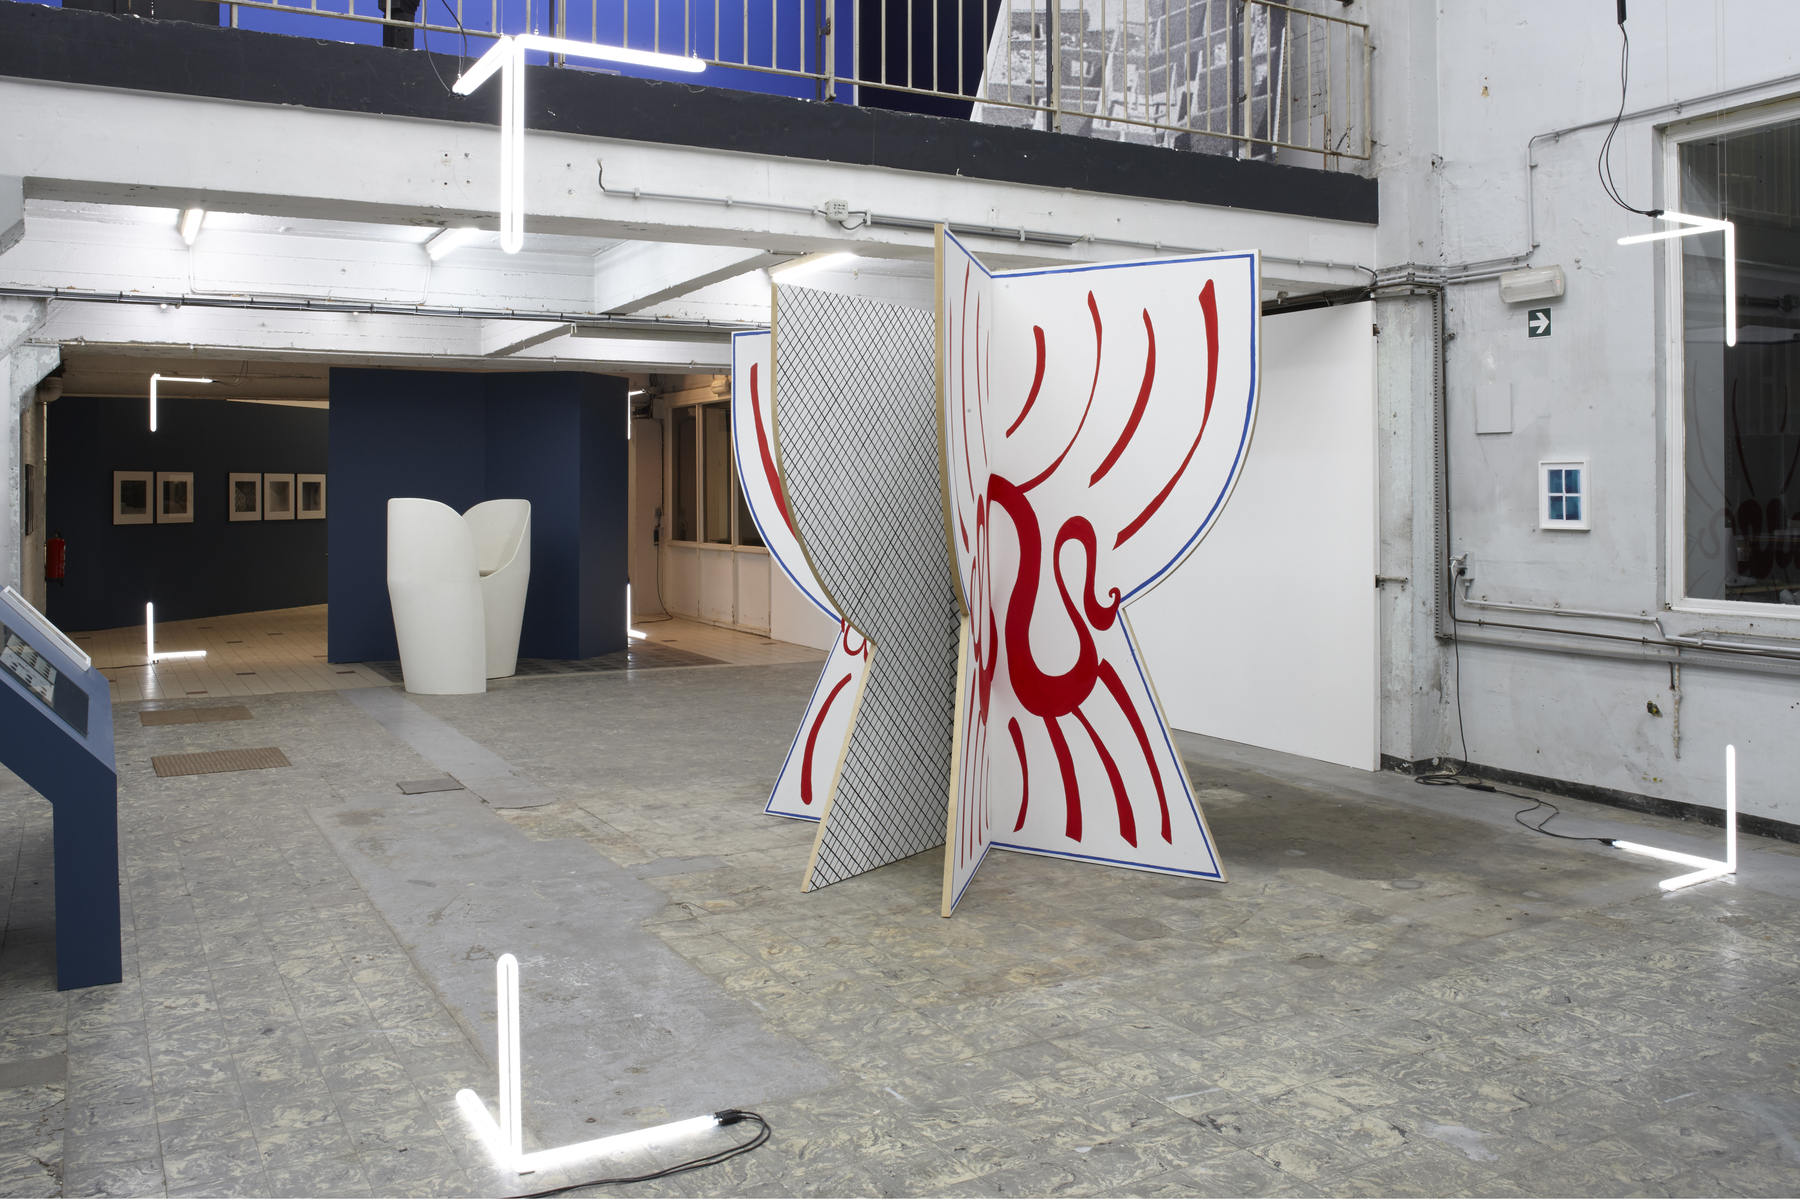 'The Corner Show', installation view, Extra City Kunsthal, 2015 © Jan Kempenaers283